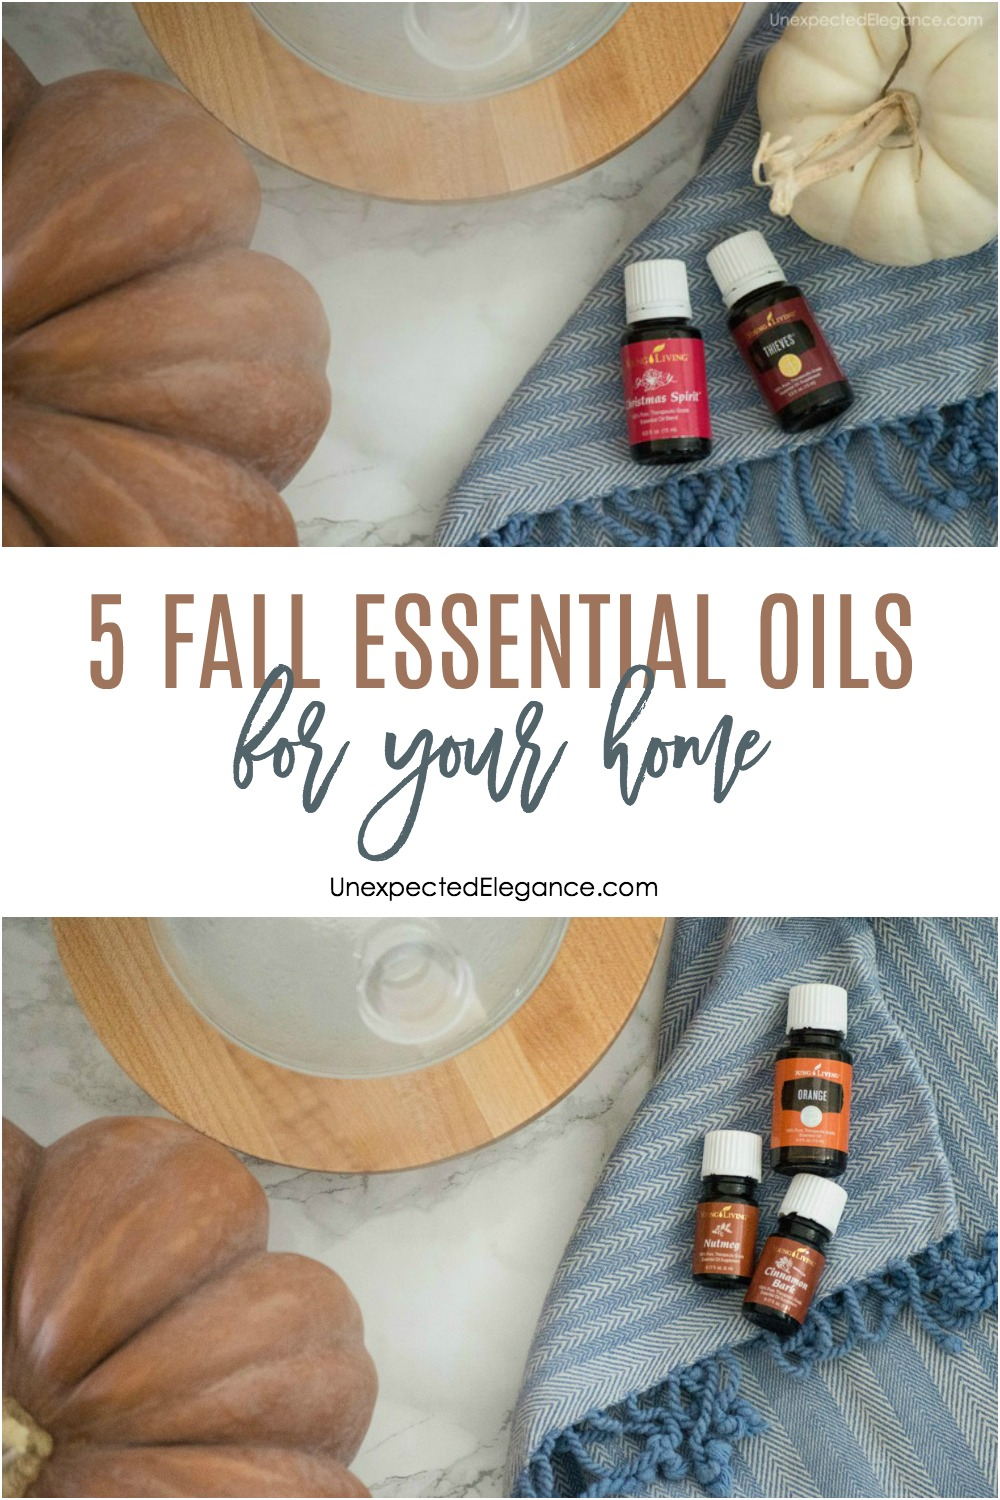 Here are 5 fall essential oils for your home this season, that will create the feel and smell of fall without the artificial scents!